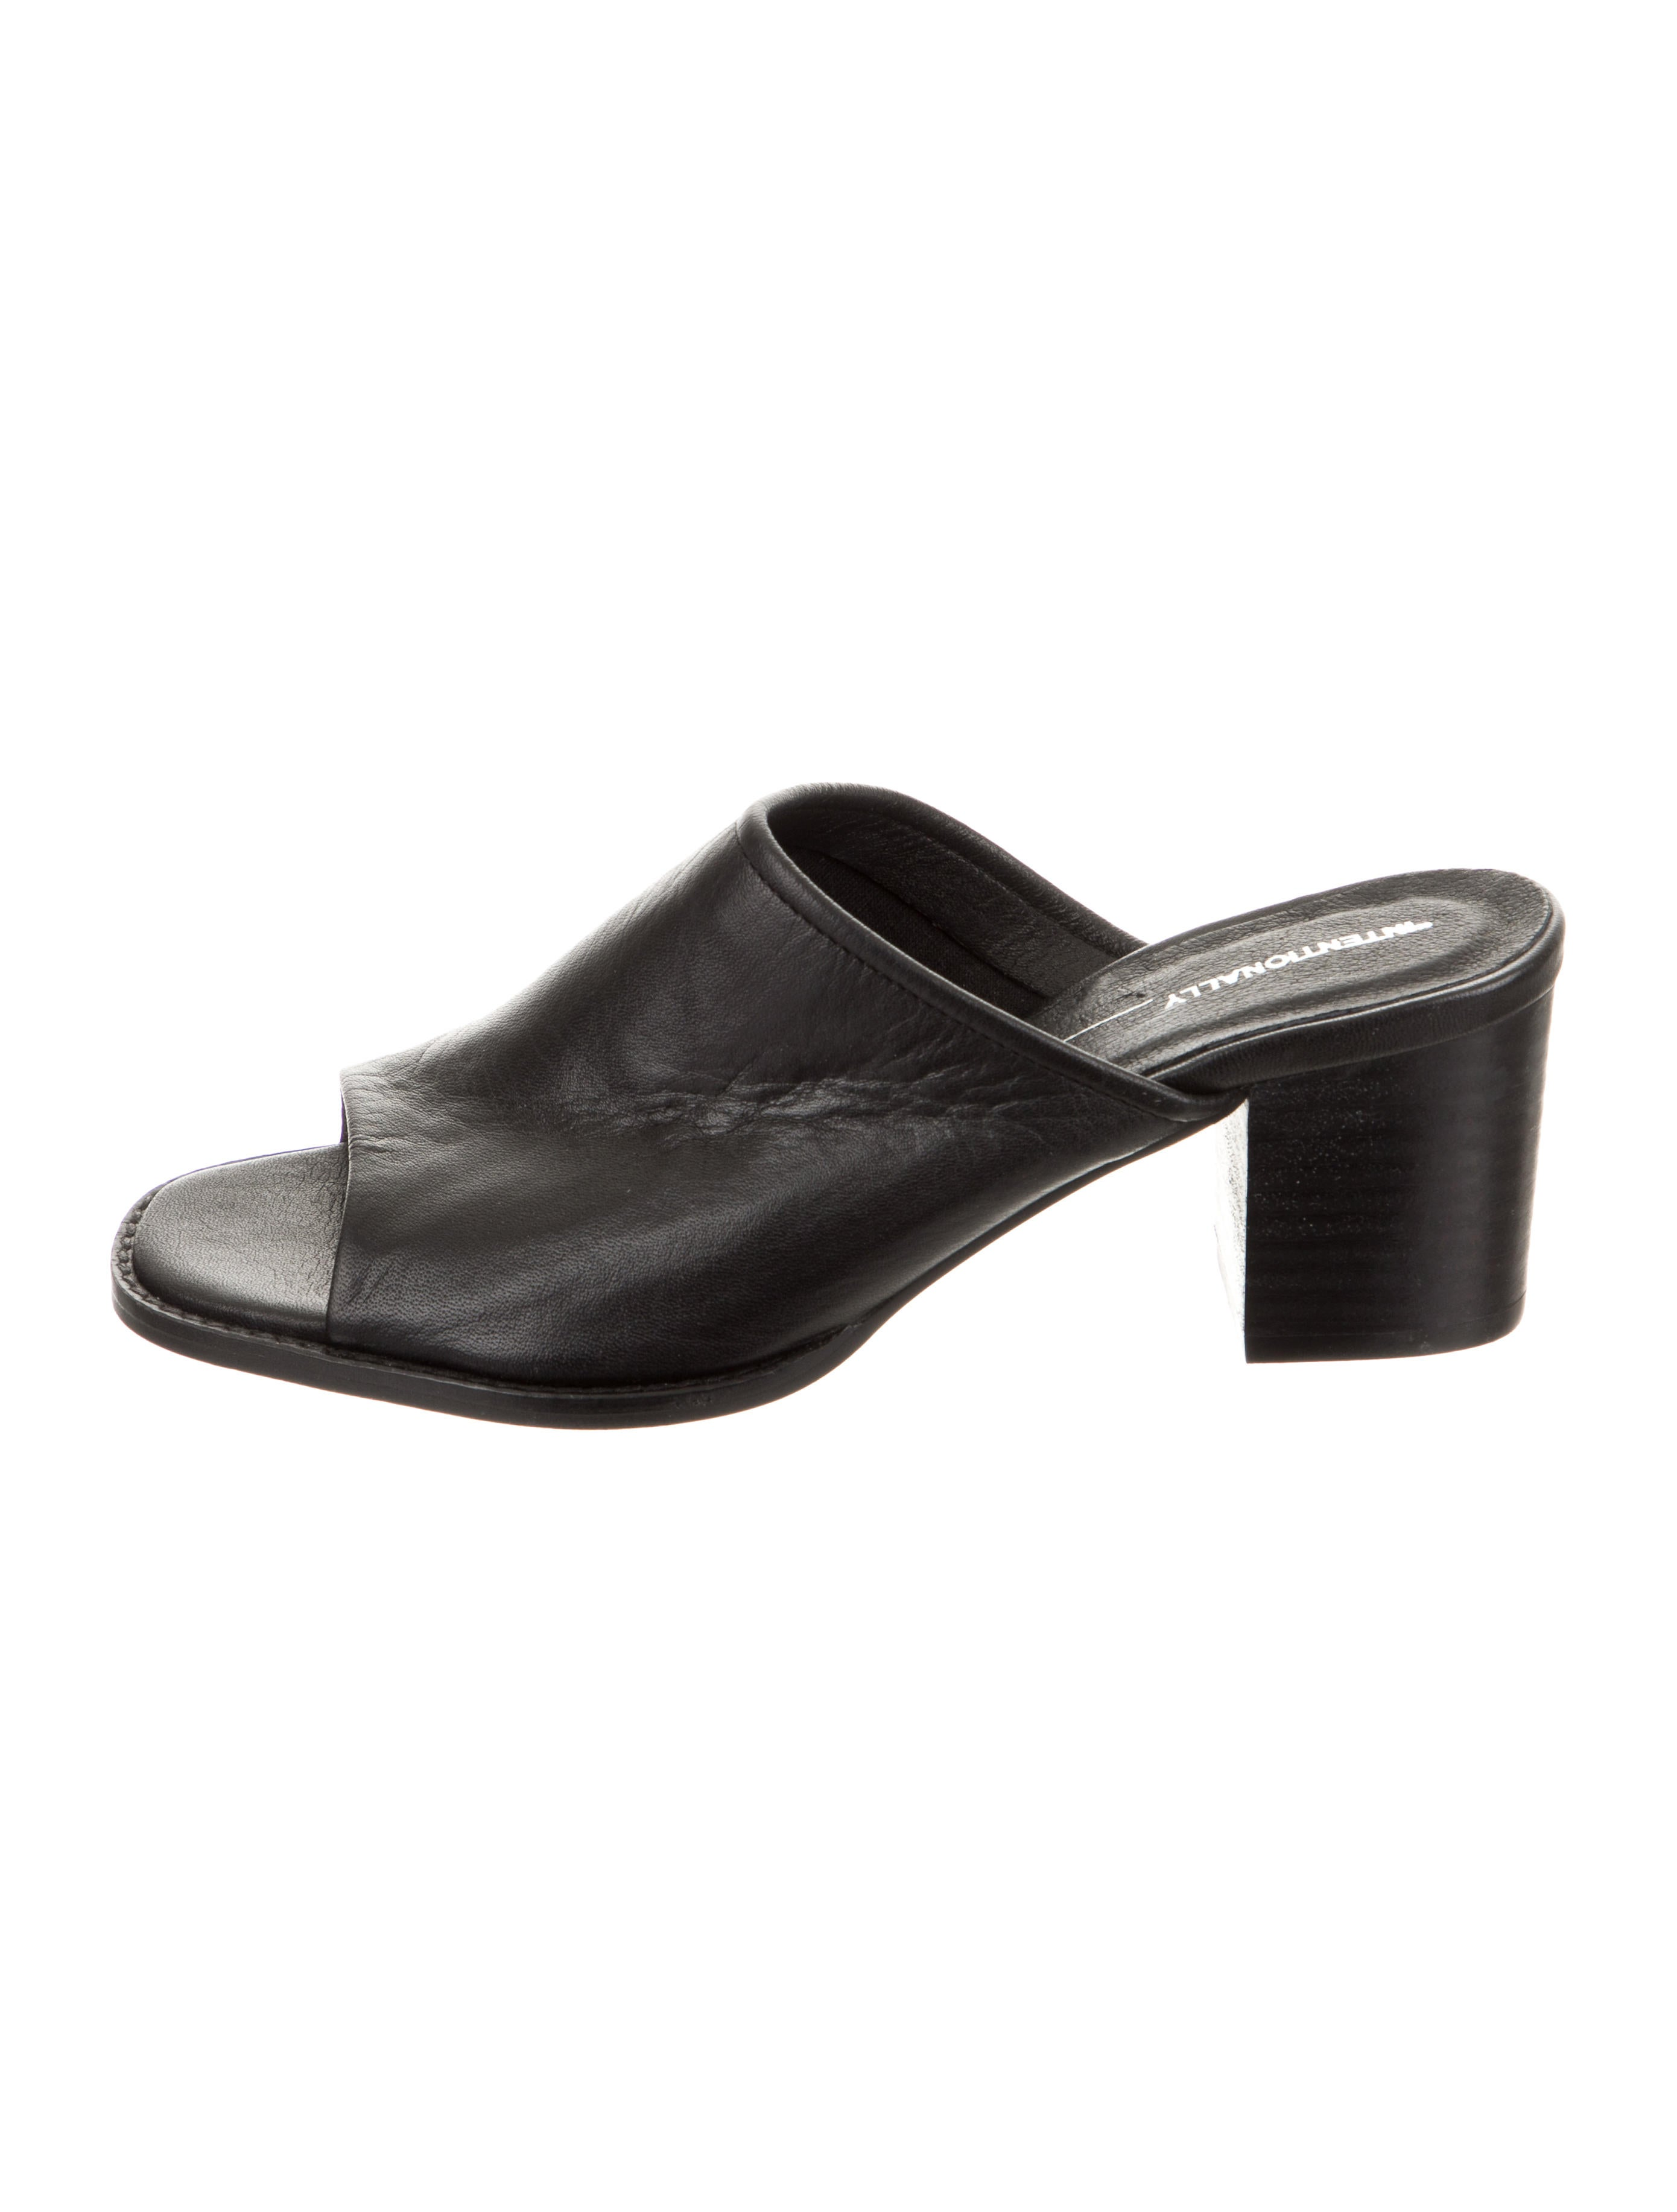 9e2301401e625 Intentionally Blank Leather Round-Toe Slide Sandals - Shoes ...